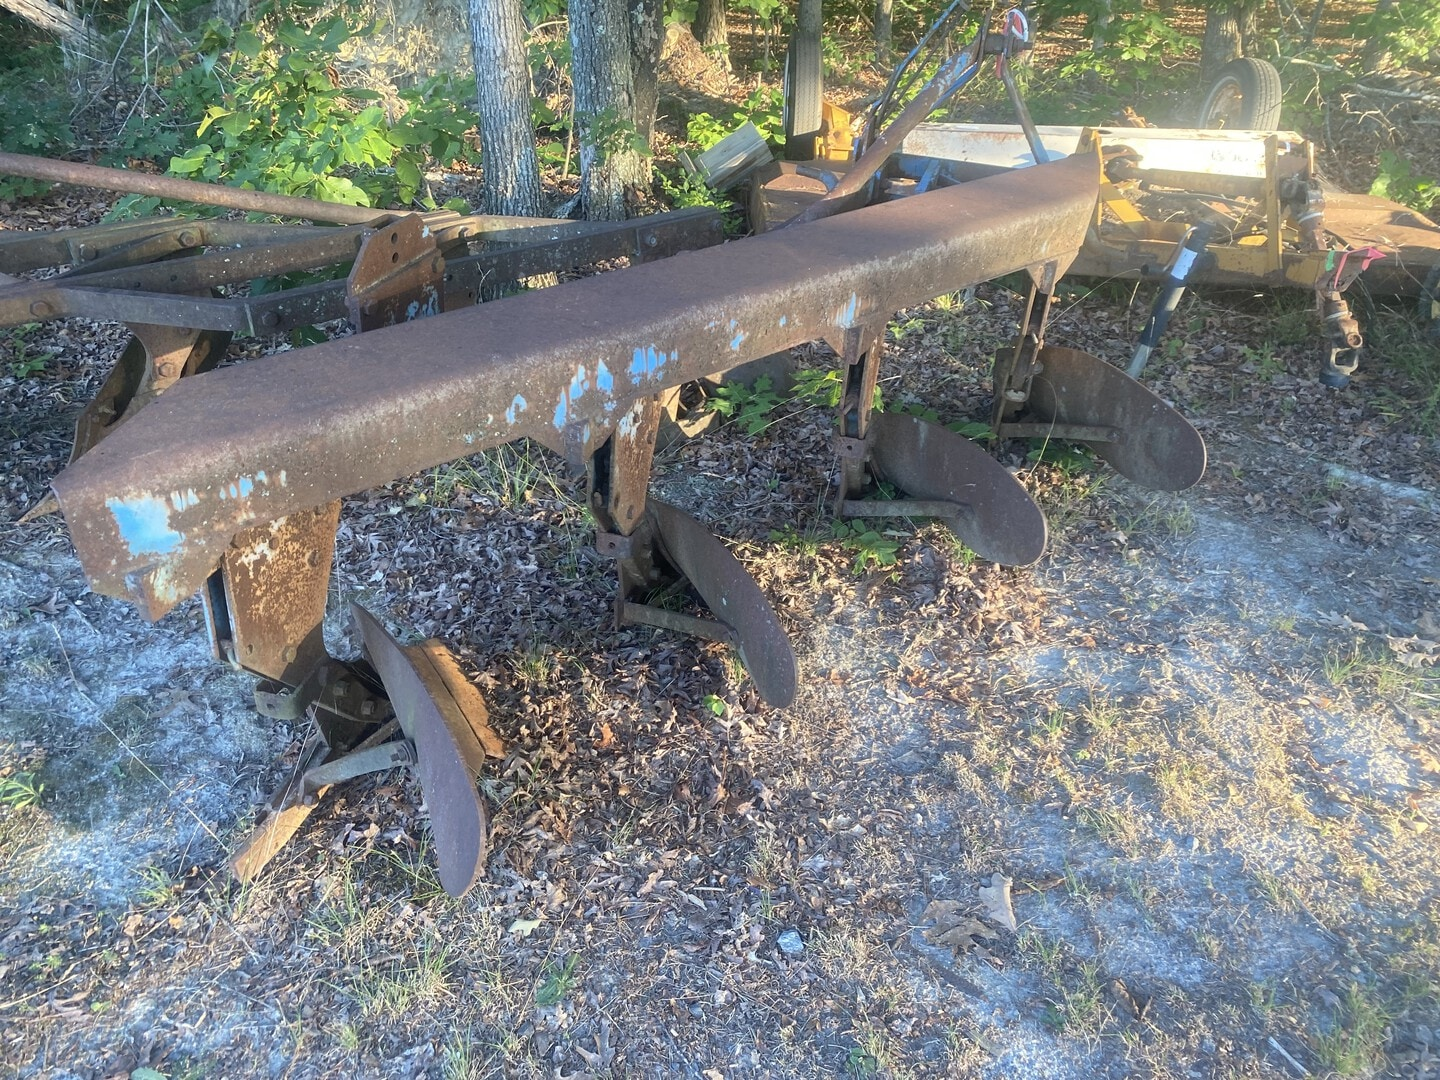 Used, 0, Ford, Ford 4 bottom plow , Plow / Spreader Trucks